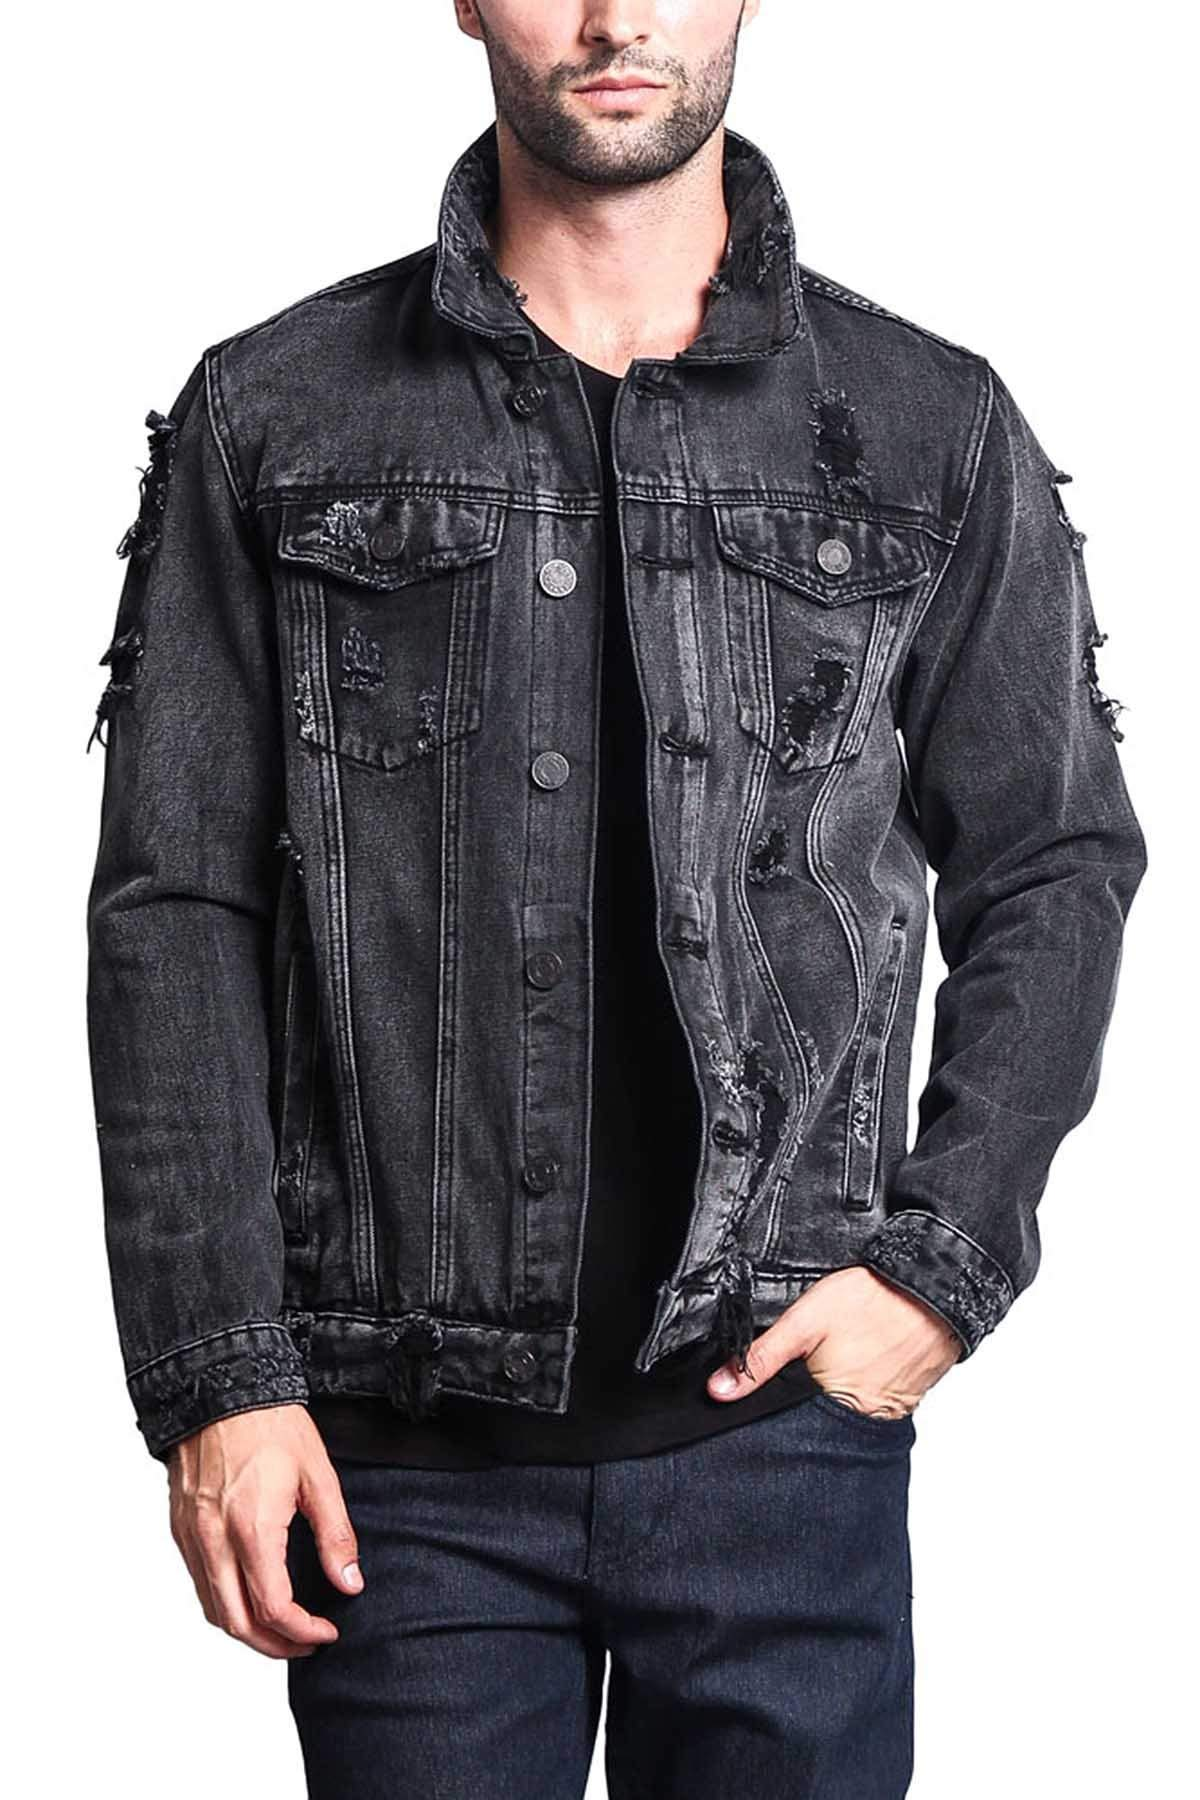 Victorious Distressed Denim Jacket DK100 - Black - Small - II7C by Victorious